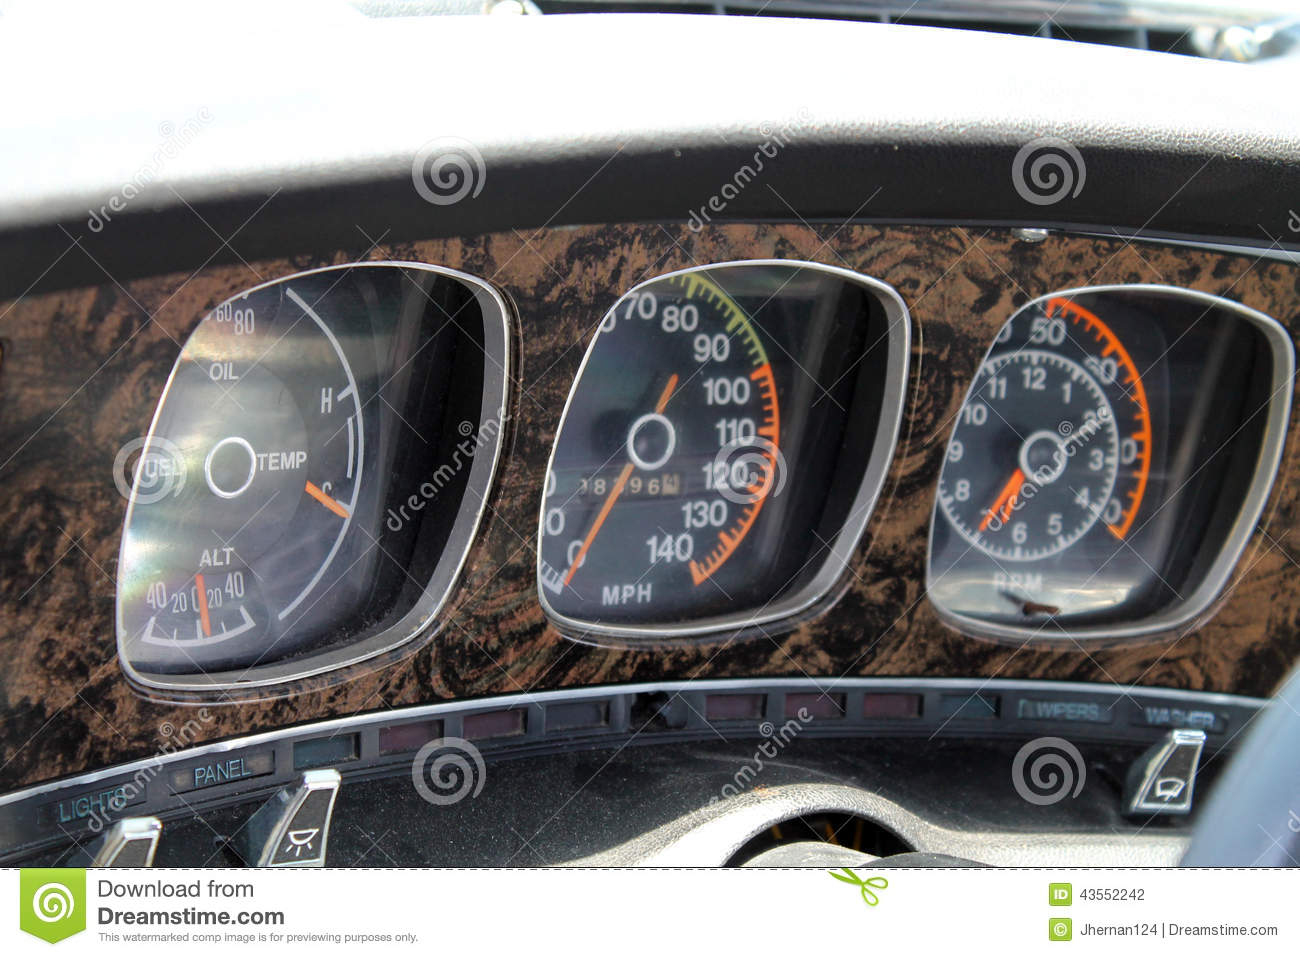 Vehicle Instrument Panel : Classic muscle car gauges stock photo image of control